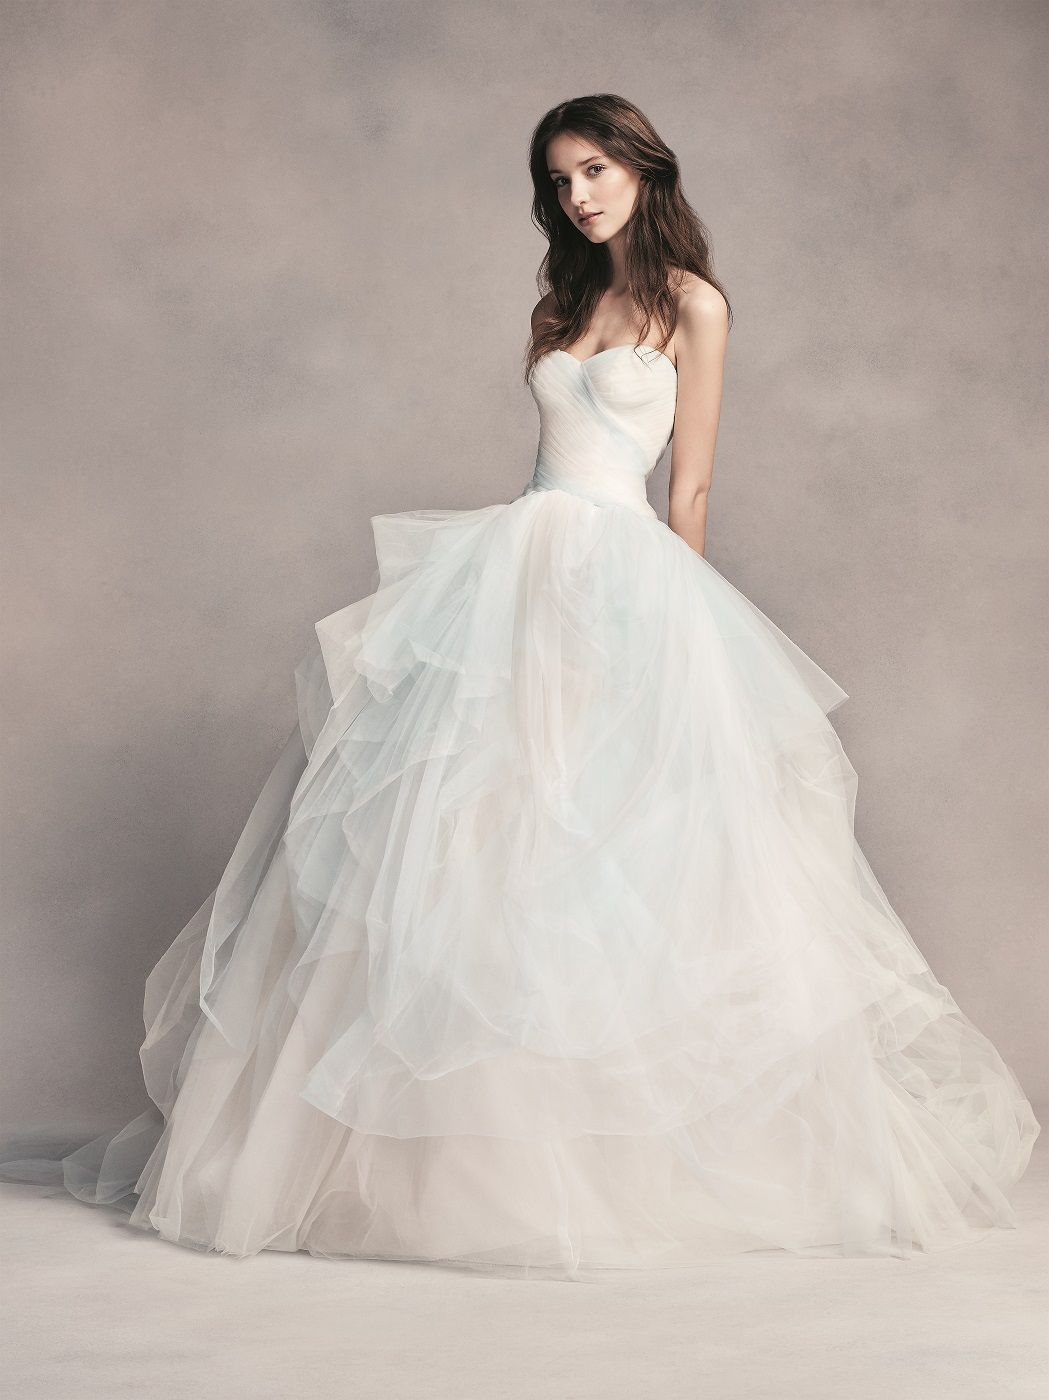 56b3fc84993 Strapless Blue Ombre Tulle Ball Gown White by Vera Wang Wedding Dress  available at David s Bridal